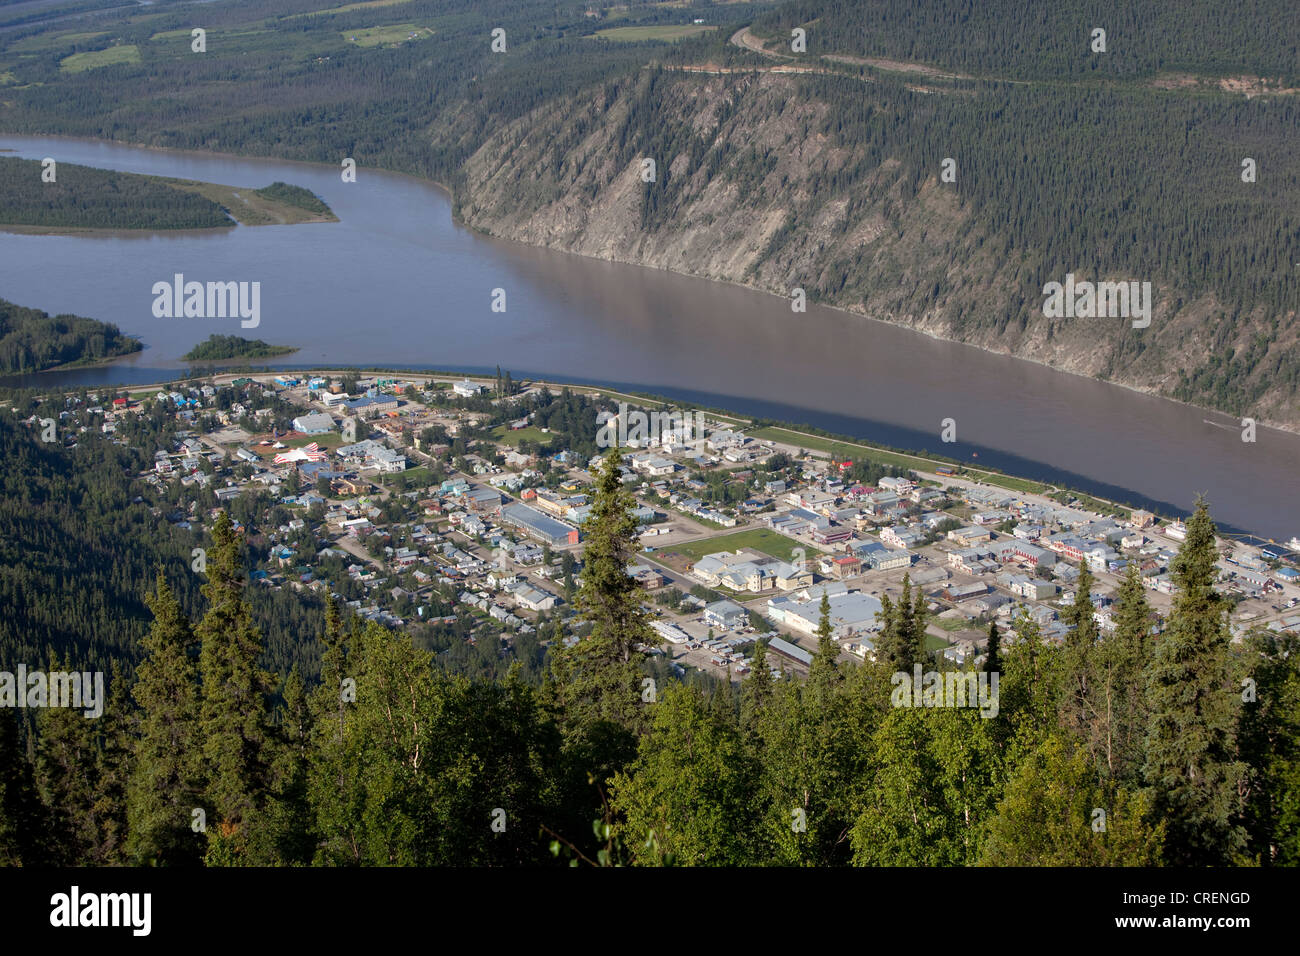 View on Dawson City, Yukon and Klondike Rivers from Midnight Dome, Yukon Territory, Canada - Stock Image